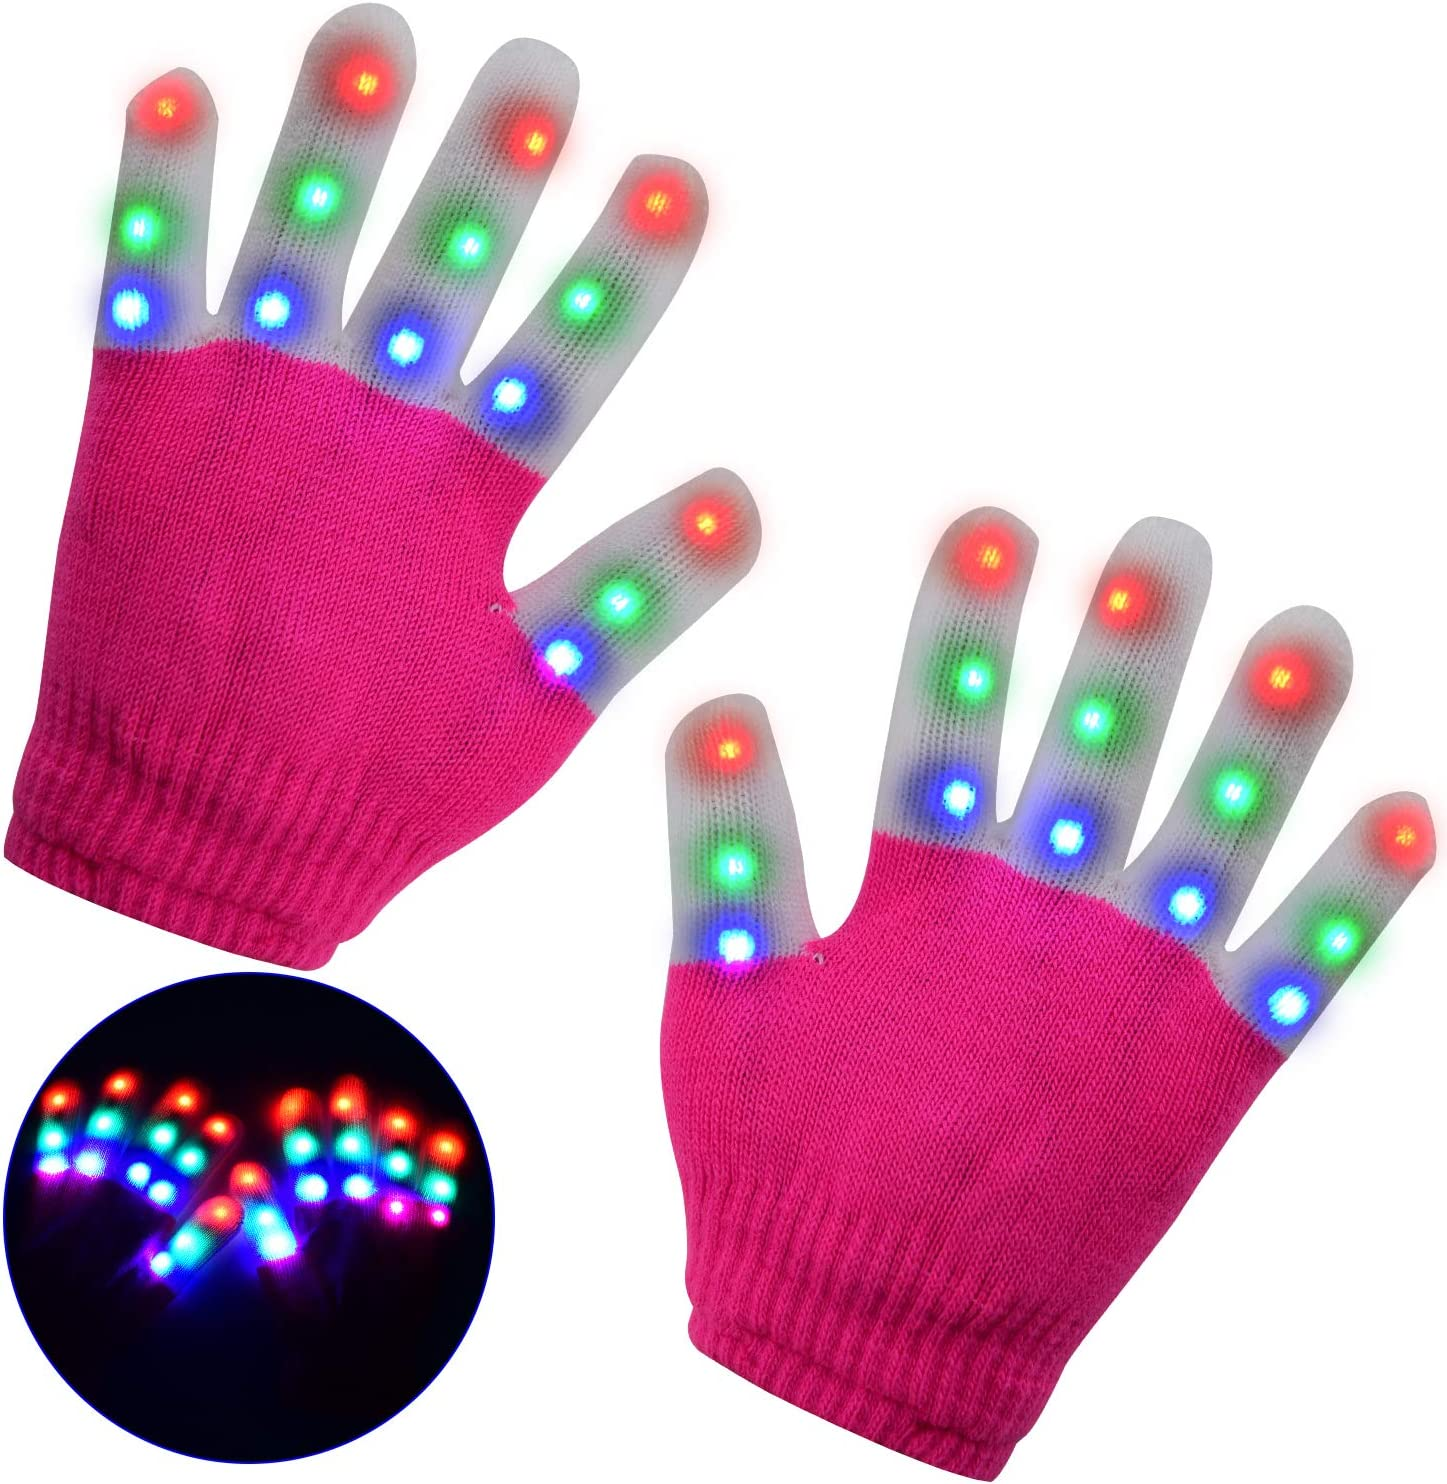 Finger Lights 3 Colors 6 Modes Flashing LED Warm Gloves Colorful Flashing Rave Glow Gloves Kids Toys for Christmas Halloween Party Favors Light Up Toys Novelty M-deal . LSXD LED Gloves